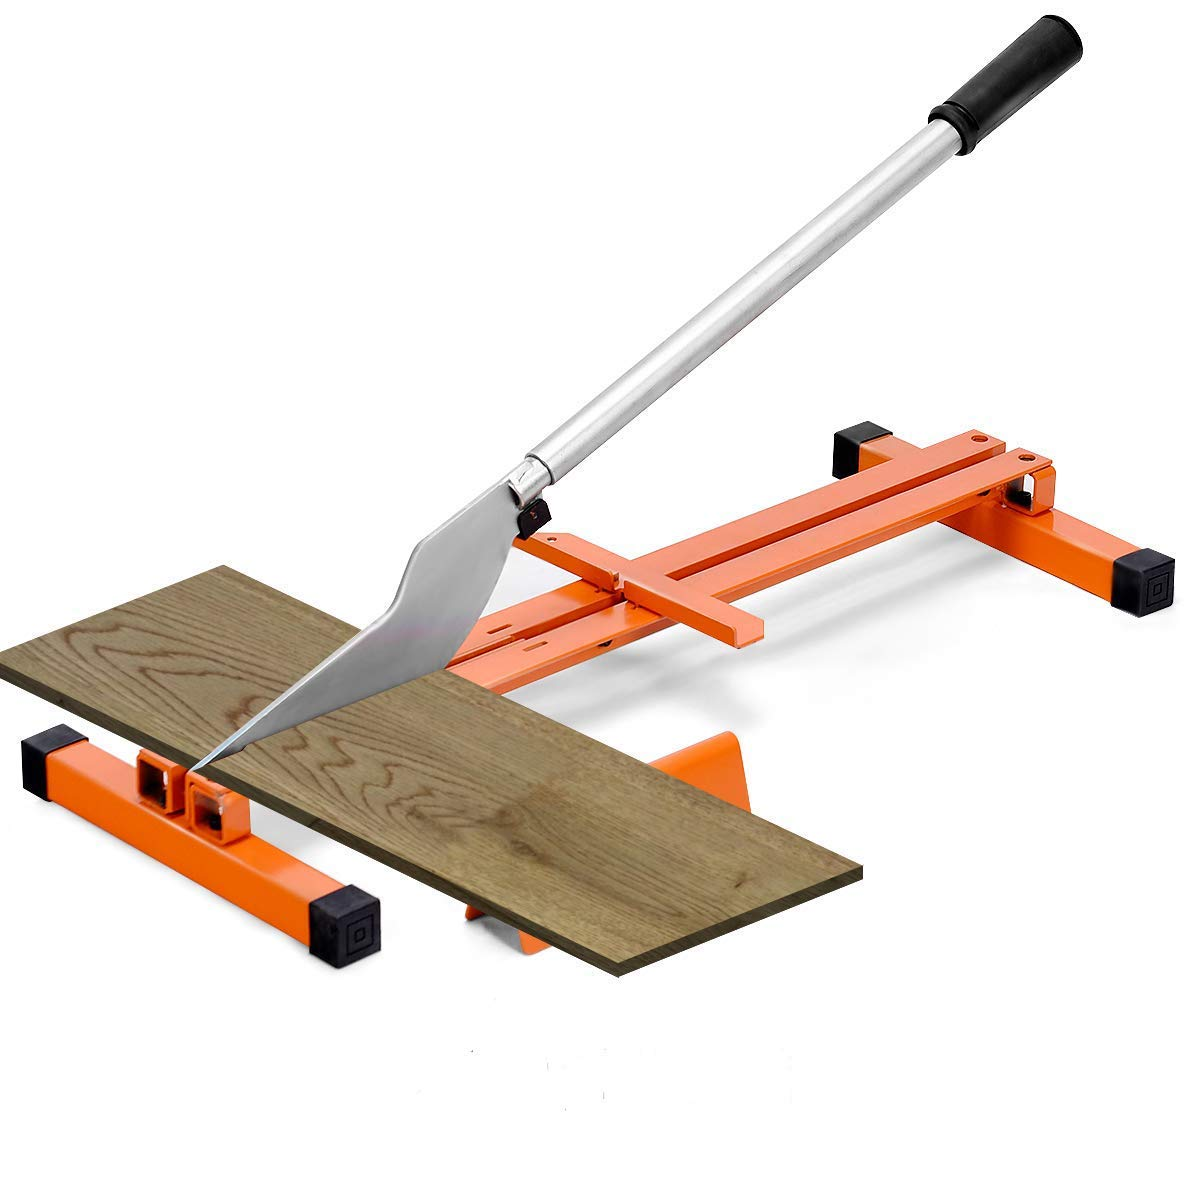 Goplus Vinyl Floor Cutter, Laminate Flooring Cutter for 8-inch & 12-inch Wide Floor, Hand Tool V-Support Wood Planks Heavy Duty Steel Quick Cut by Goplus